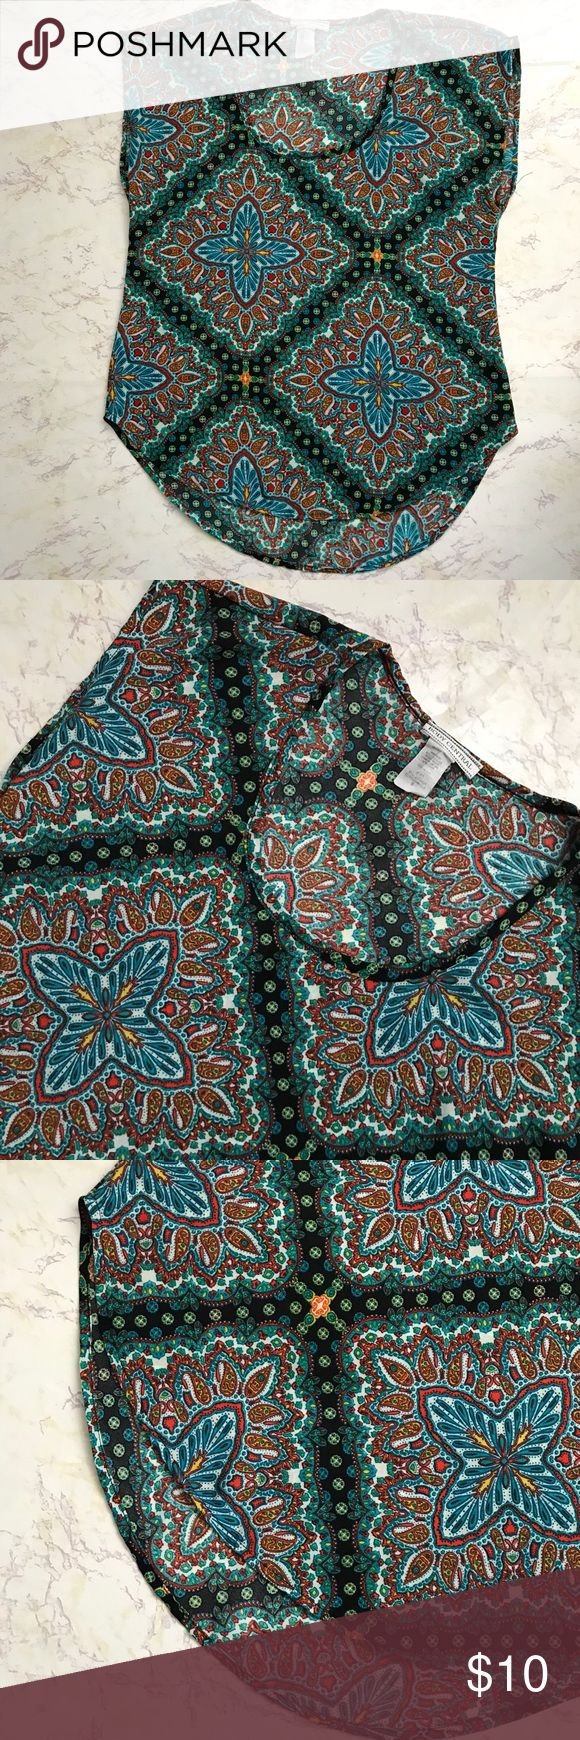 Body Central Blouse Size Small body Central print blouse. 100% polyester. Scoop hem bottom Body Central Tops Blouses